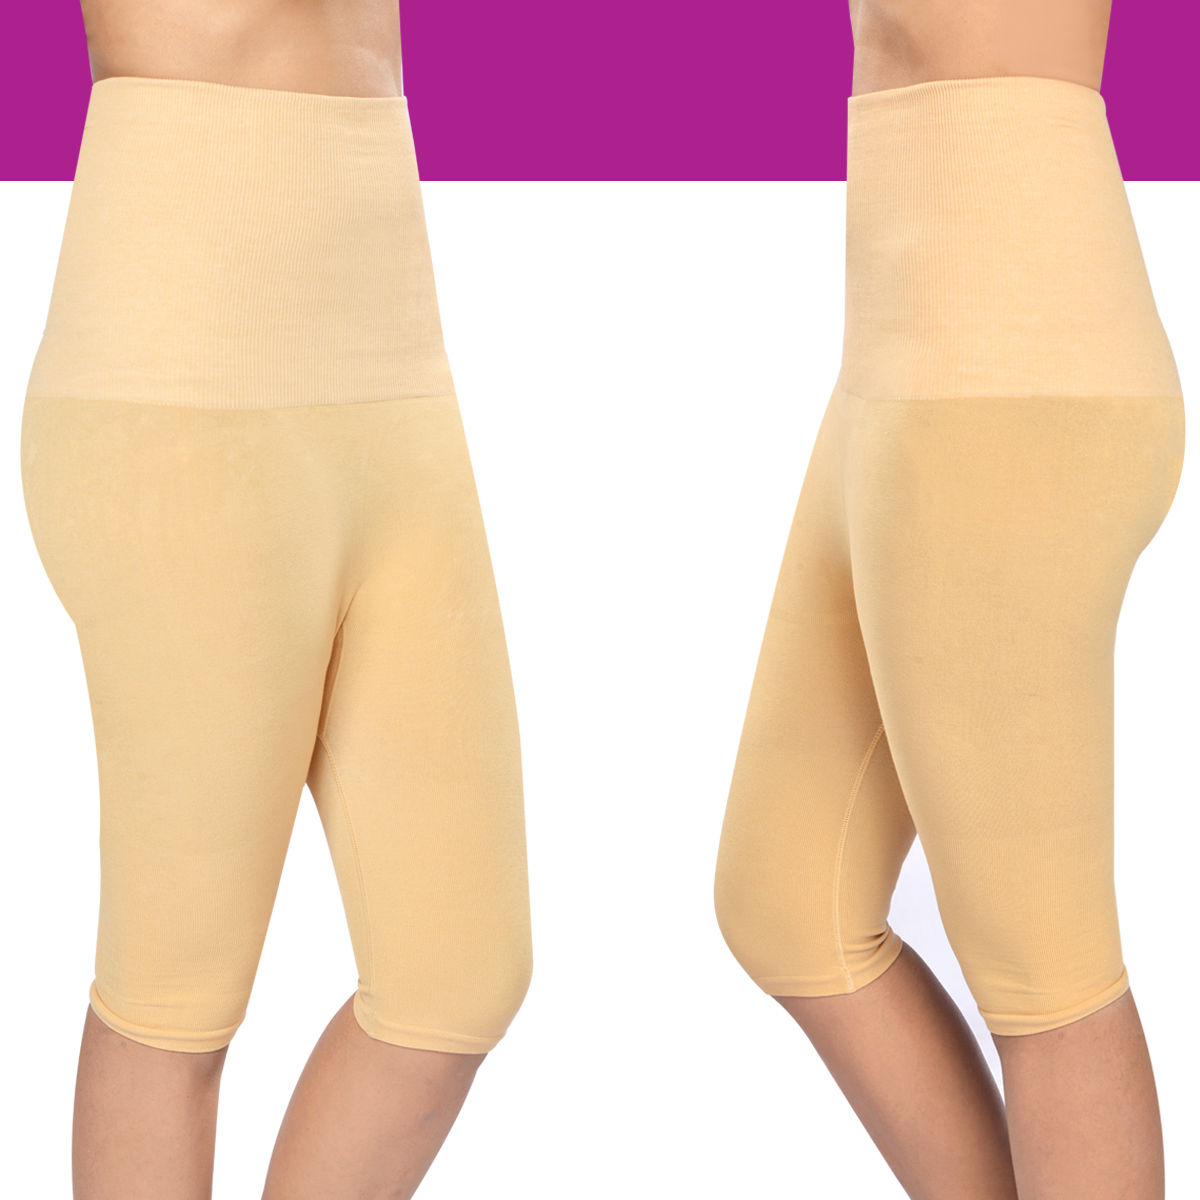 bcbfa34e76 Buy Get In Shape Tummy   Thigh Shaper for Women - Pack of 2 Online at Best  Price in India on Naaptol.com